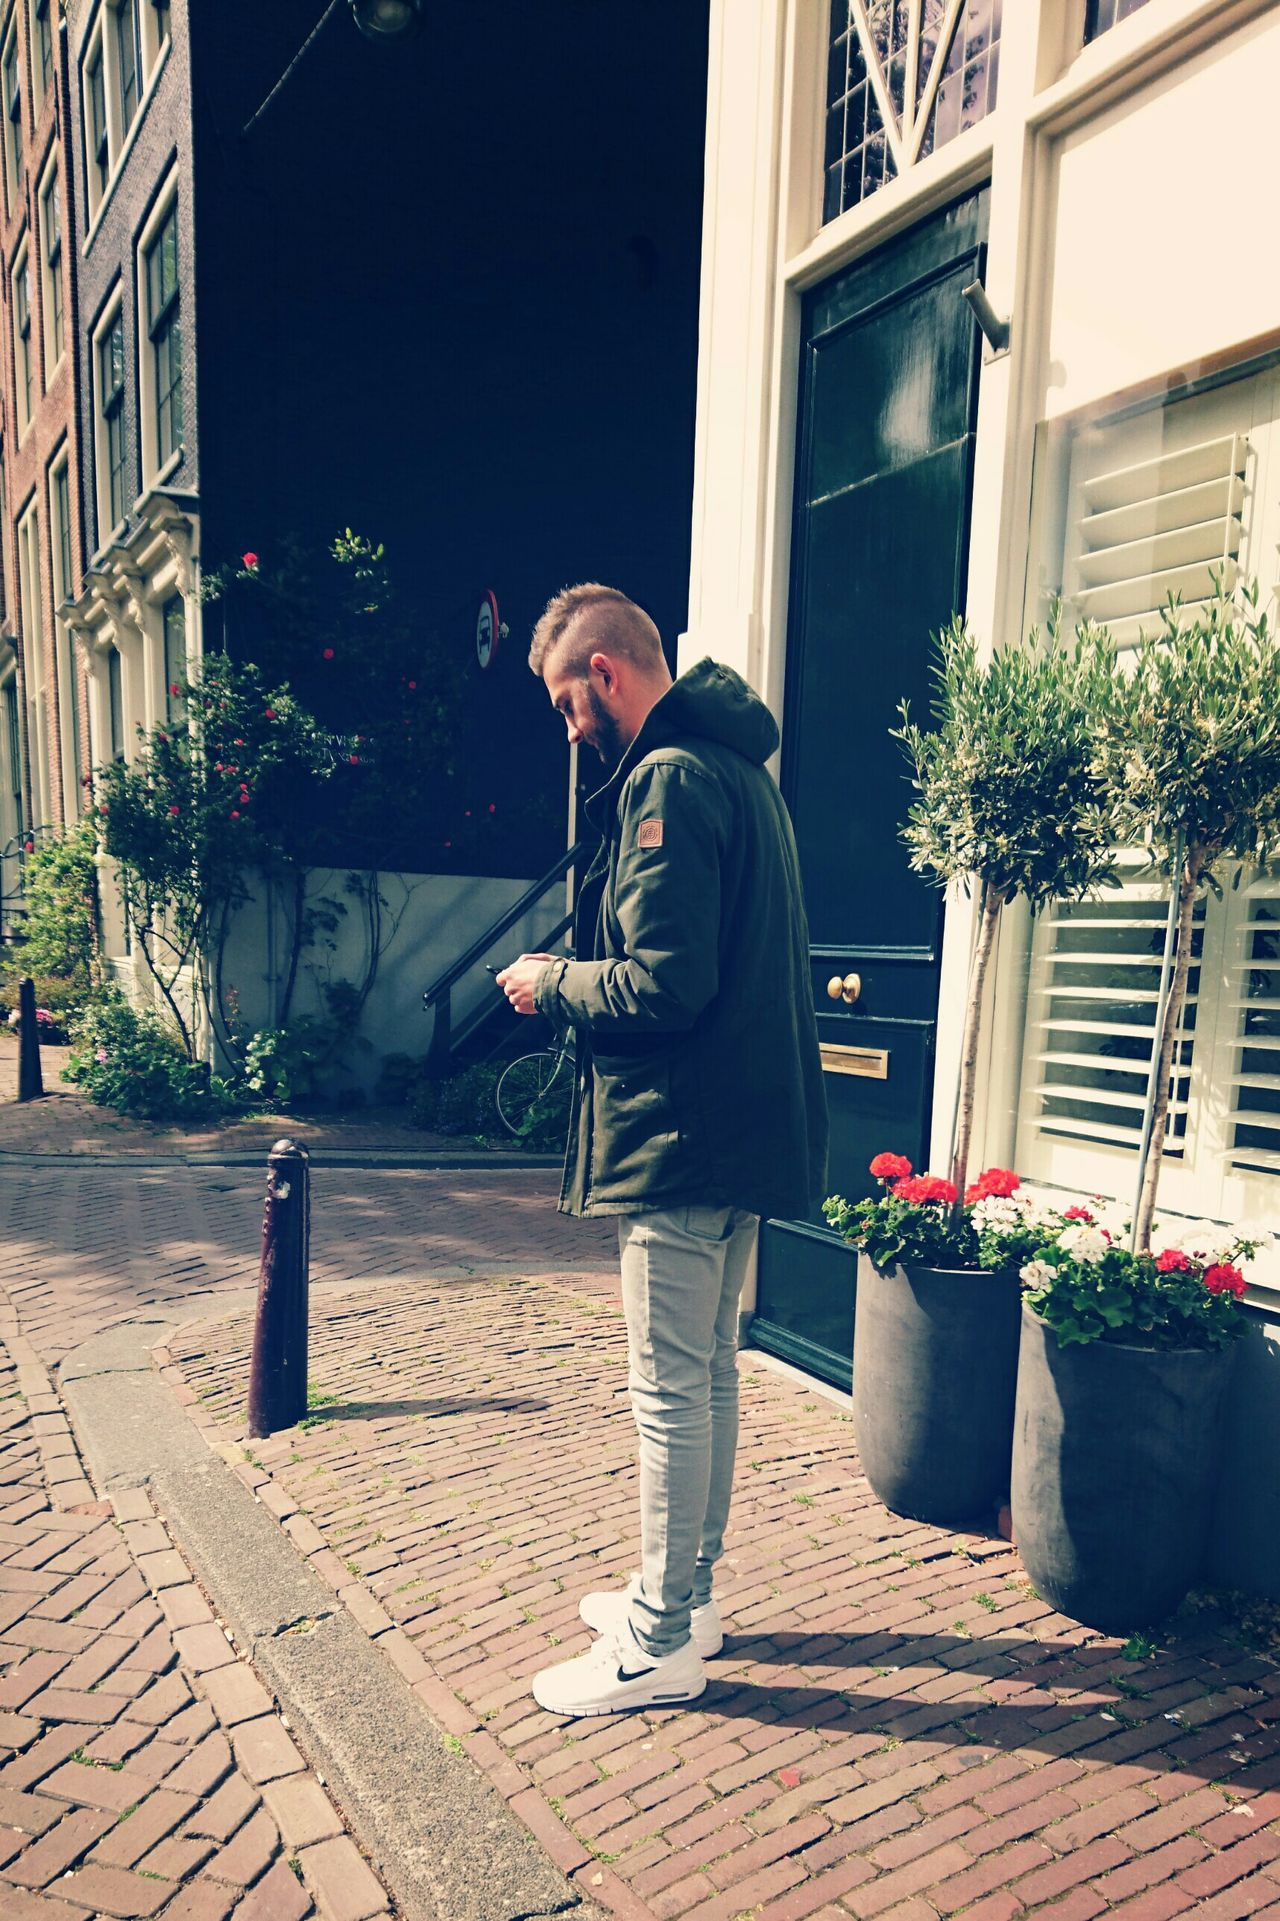 My love in Amsterdam 🍀 My Love Amsterdamcity Too Beautiful